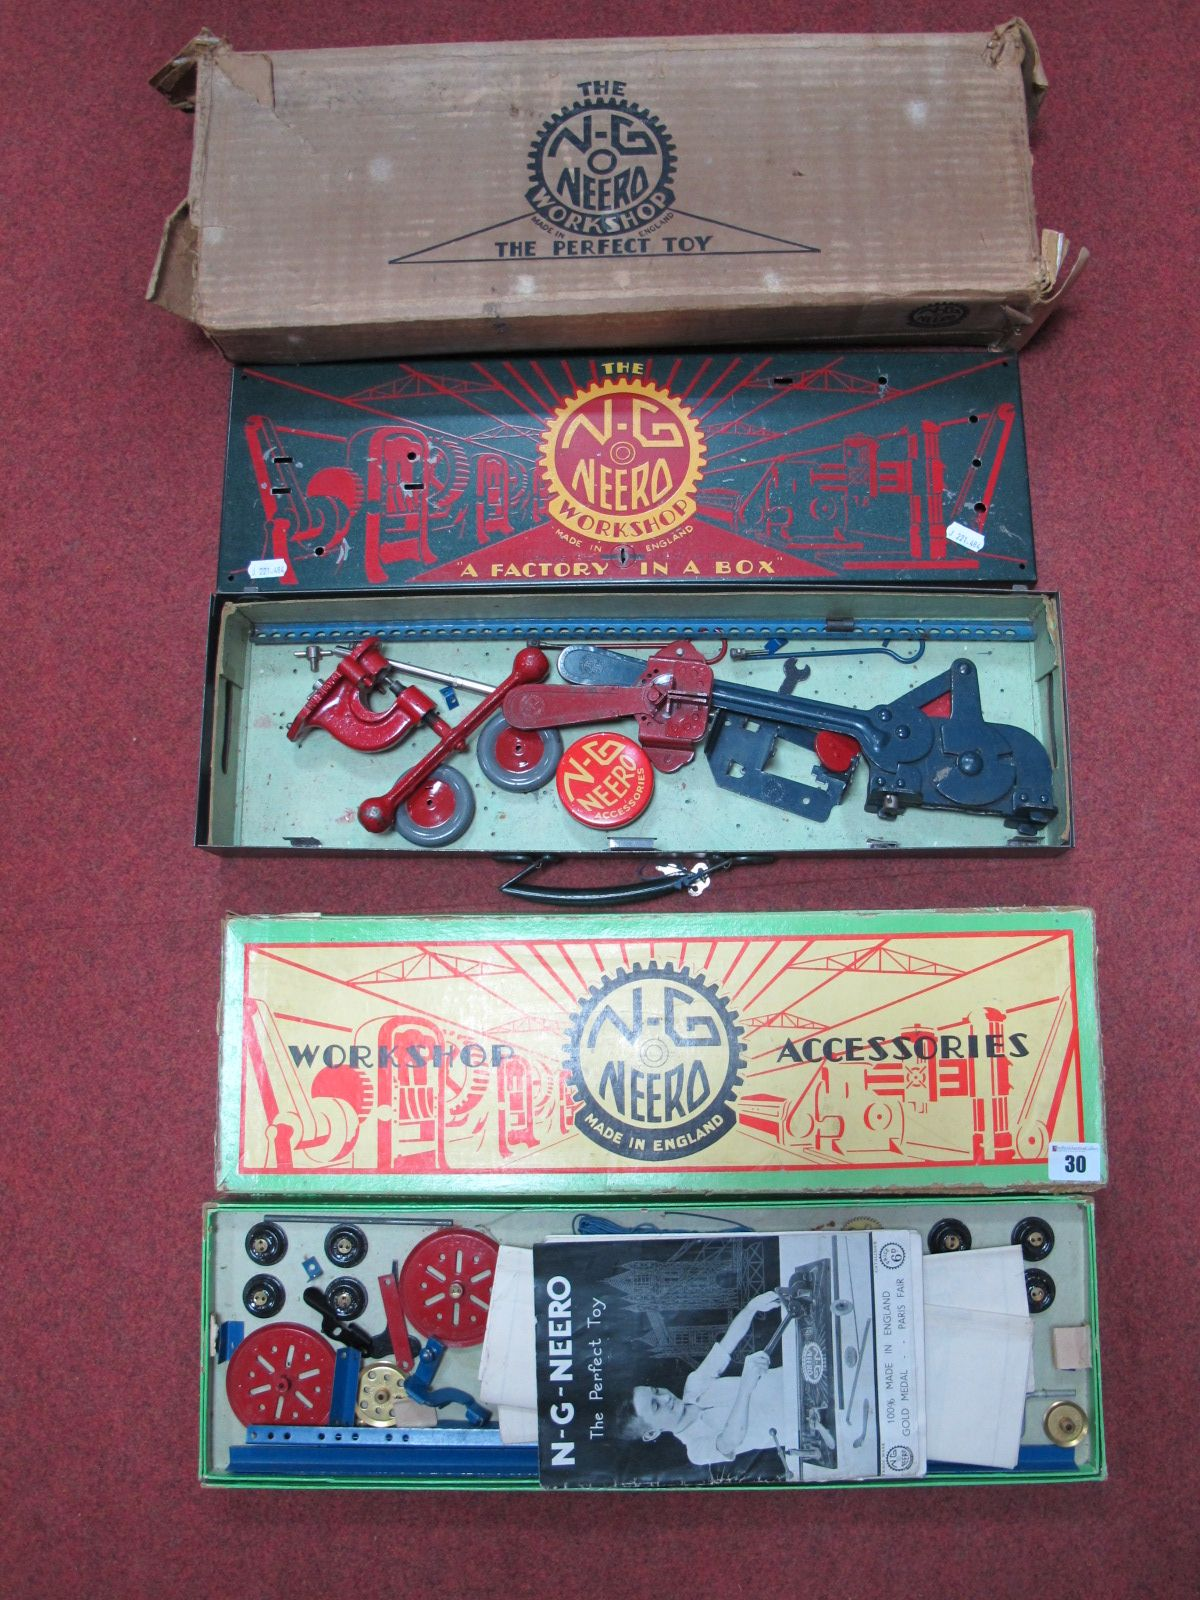 Lot 30 - Two Boxed Pre-War 'N-G Neero' Metal Construction Kits, one being a metal boxed 'Factory in a Box'